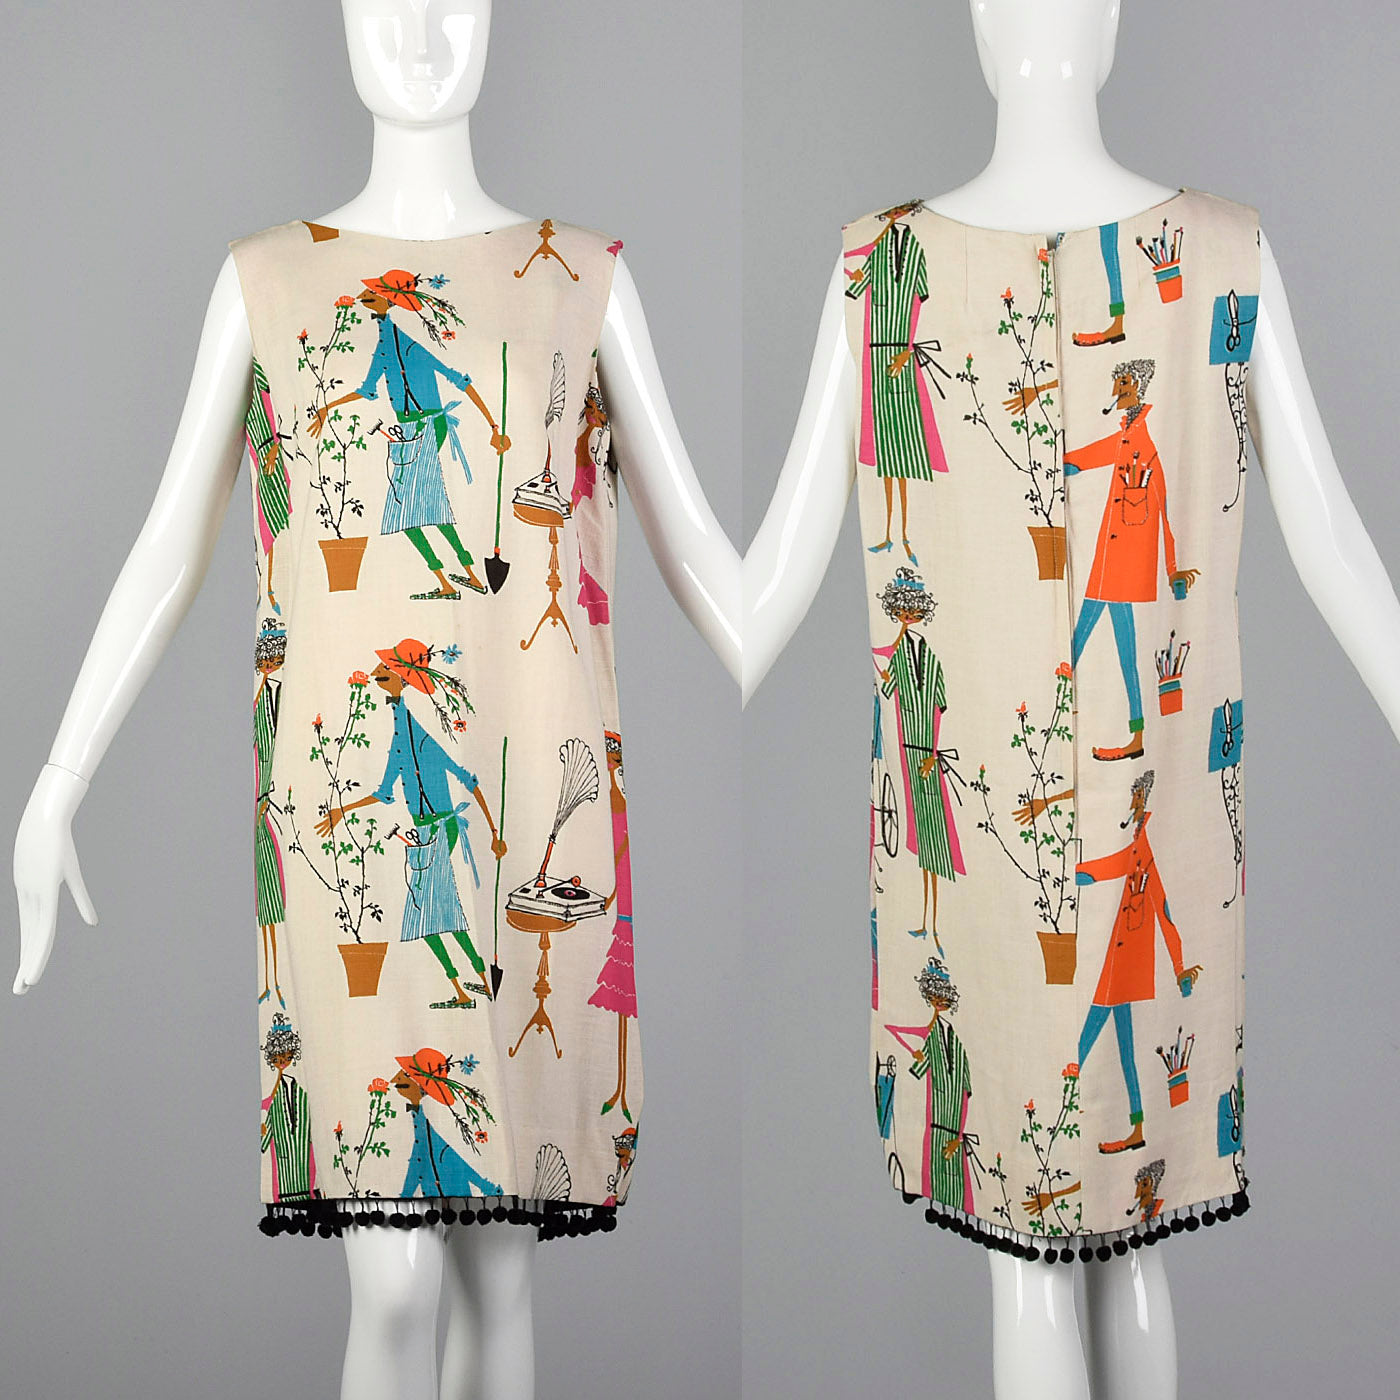 1960s Deadstock Novelty Print Shift Dress with Pom Pom Hem